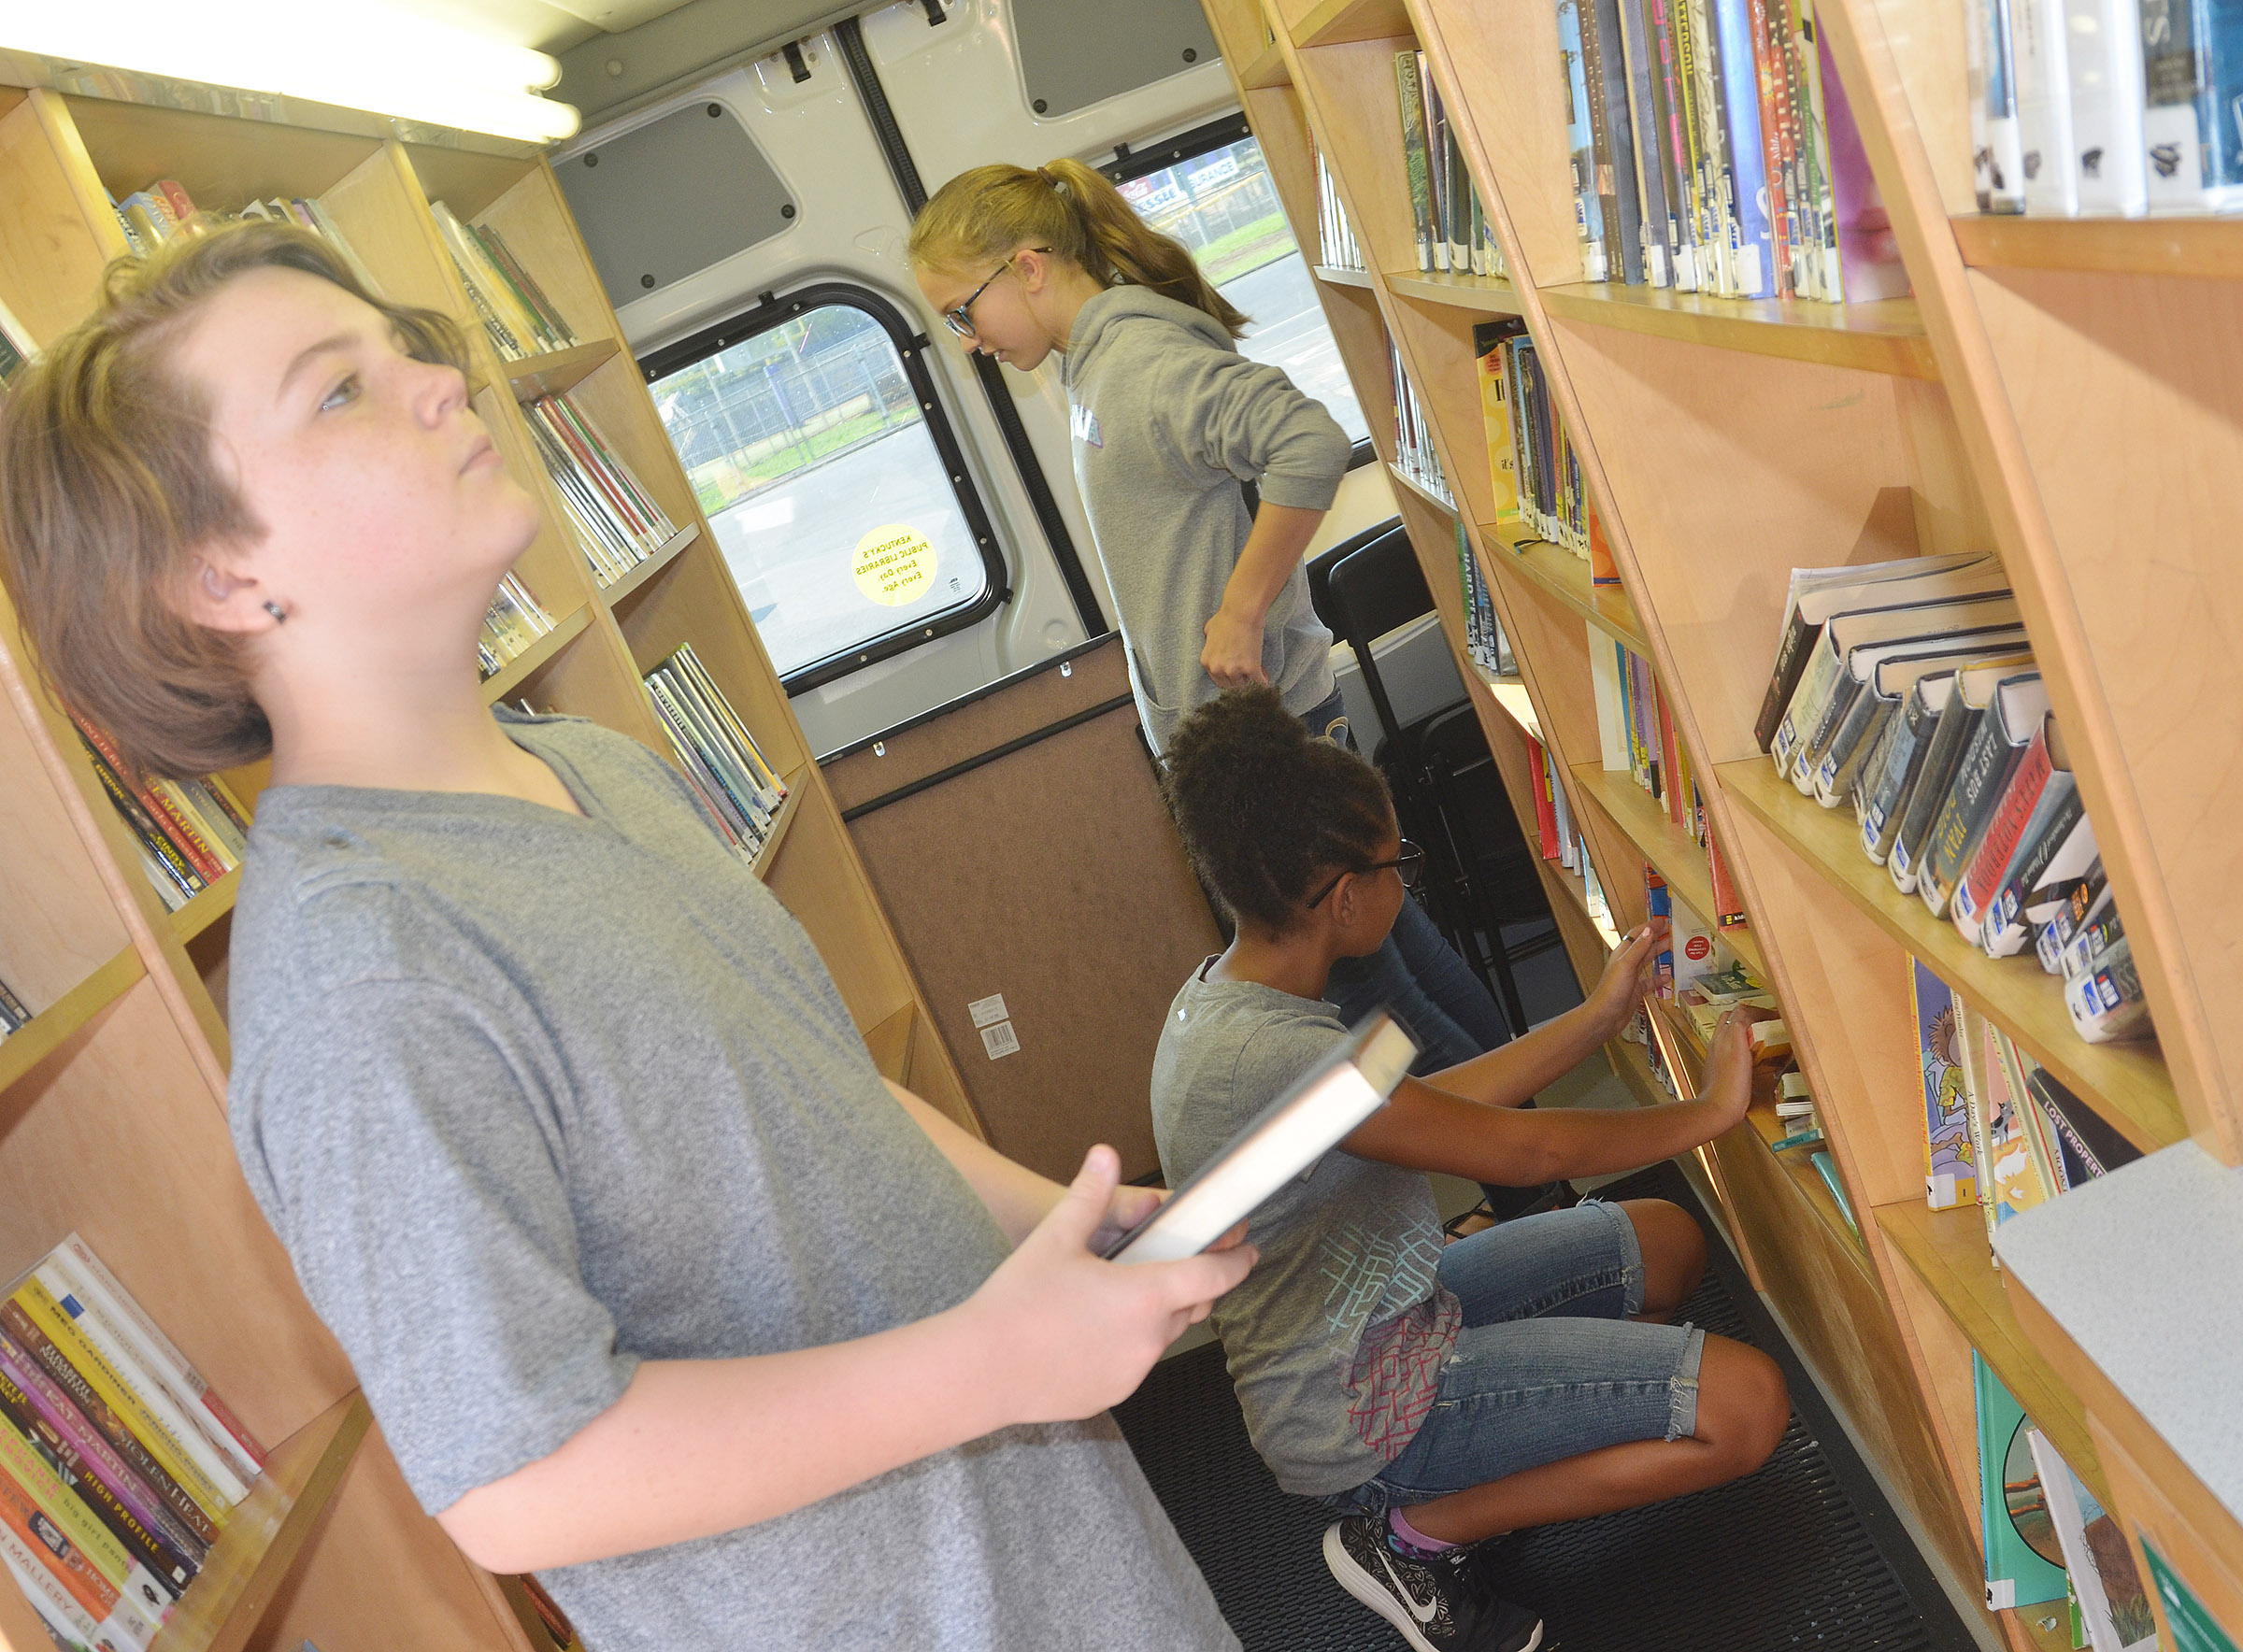 CMS sixth-graders, from left, Kayden Birdwell, Keely Thompson and Chloe Thompson look at books.